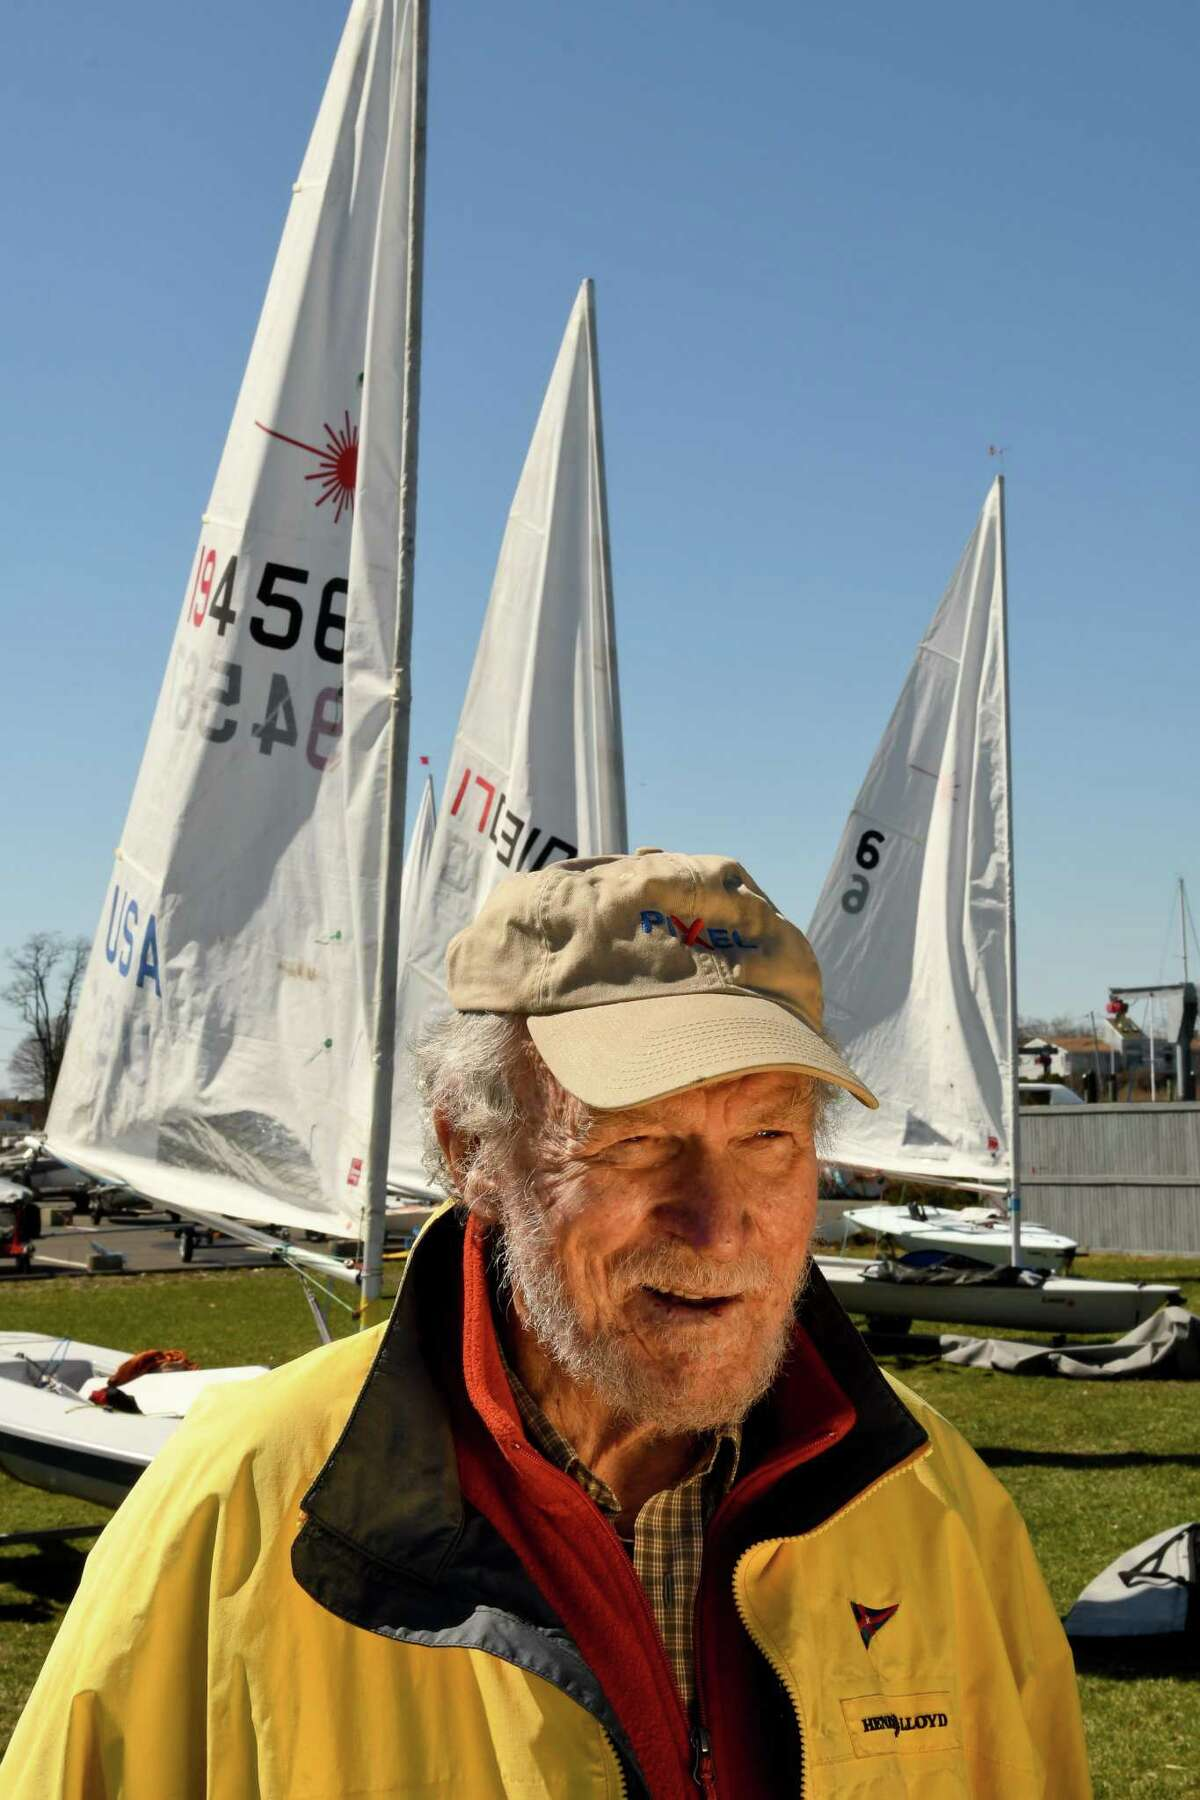 Bruce Kirby in April 2017 in Westport, Conn., alongside a small flotilla of Laser sailboats of his design.